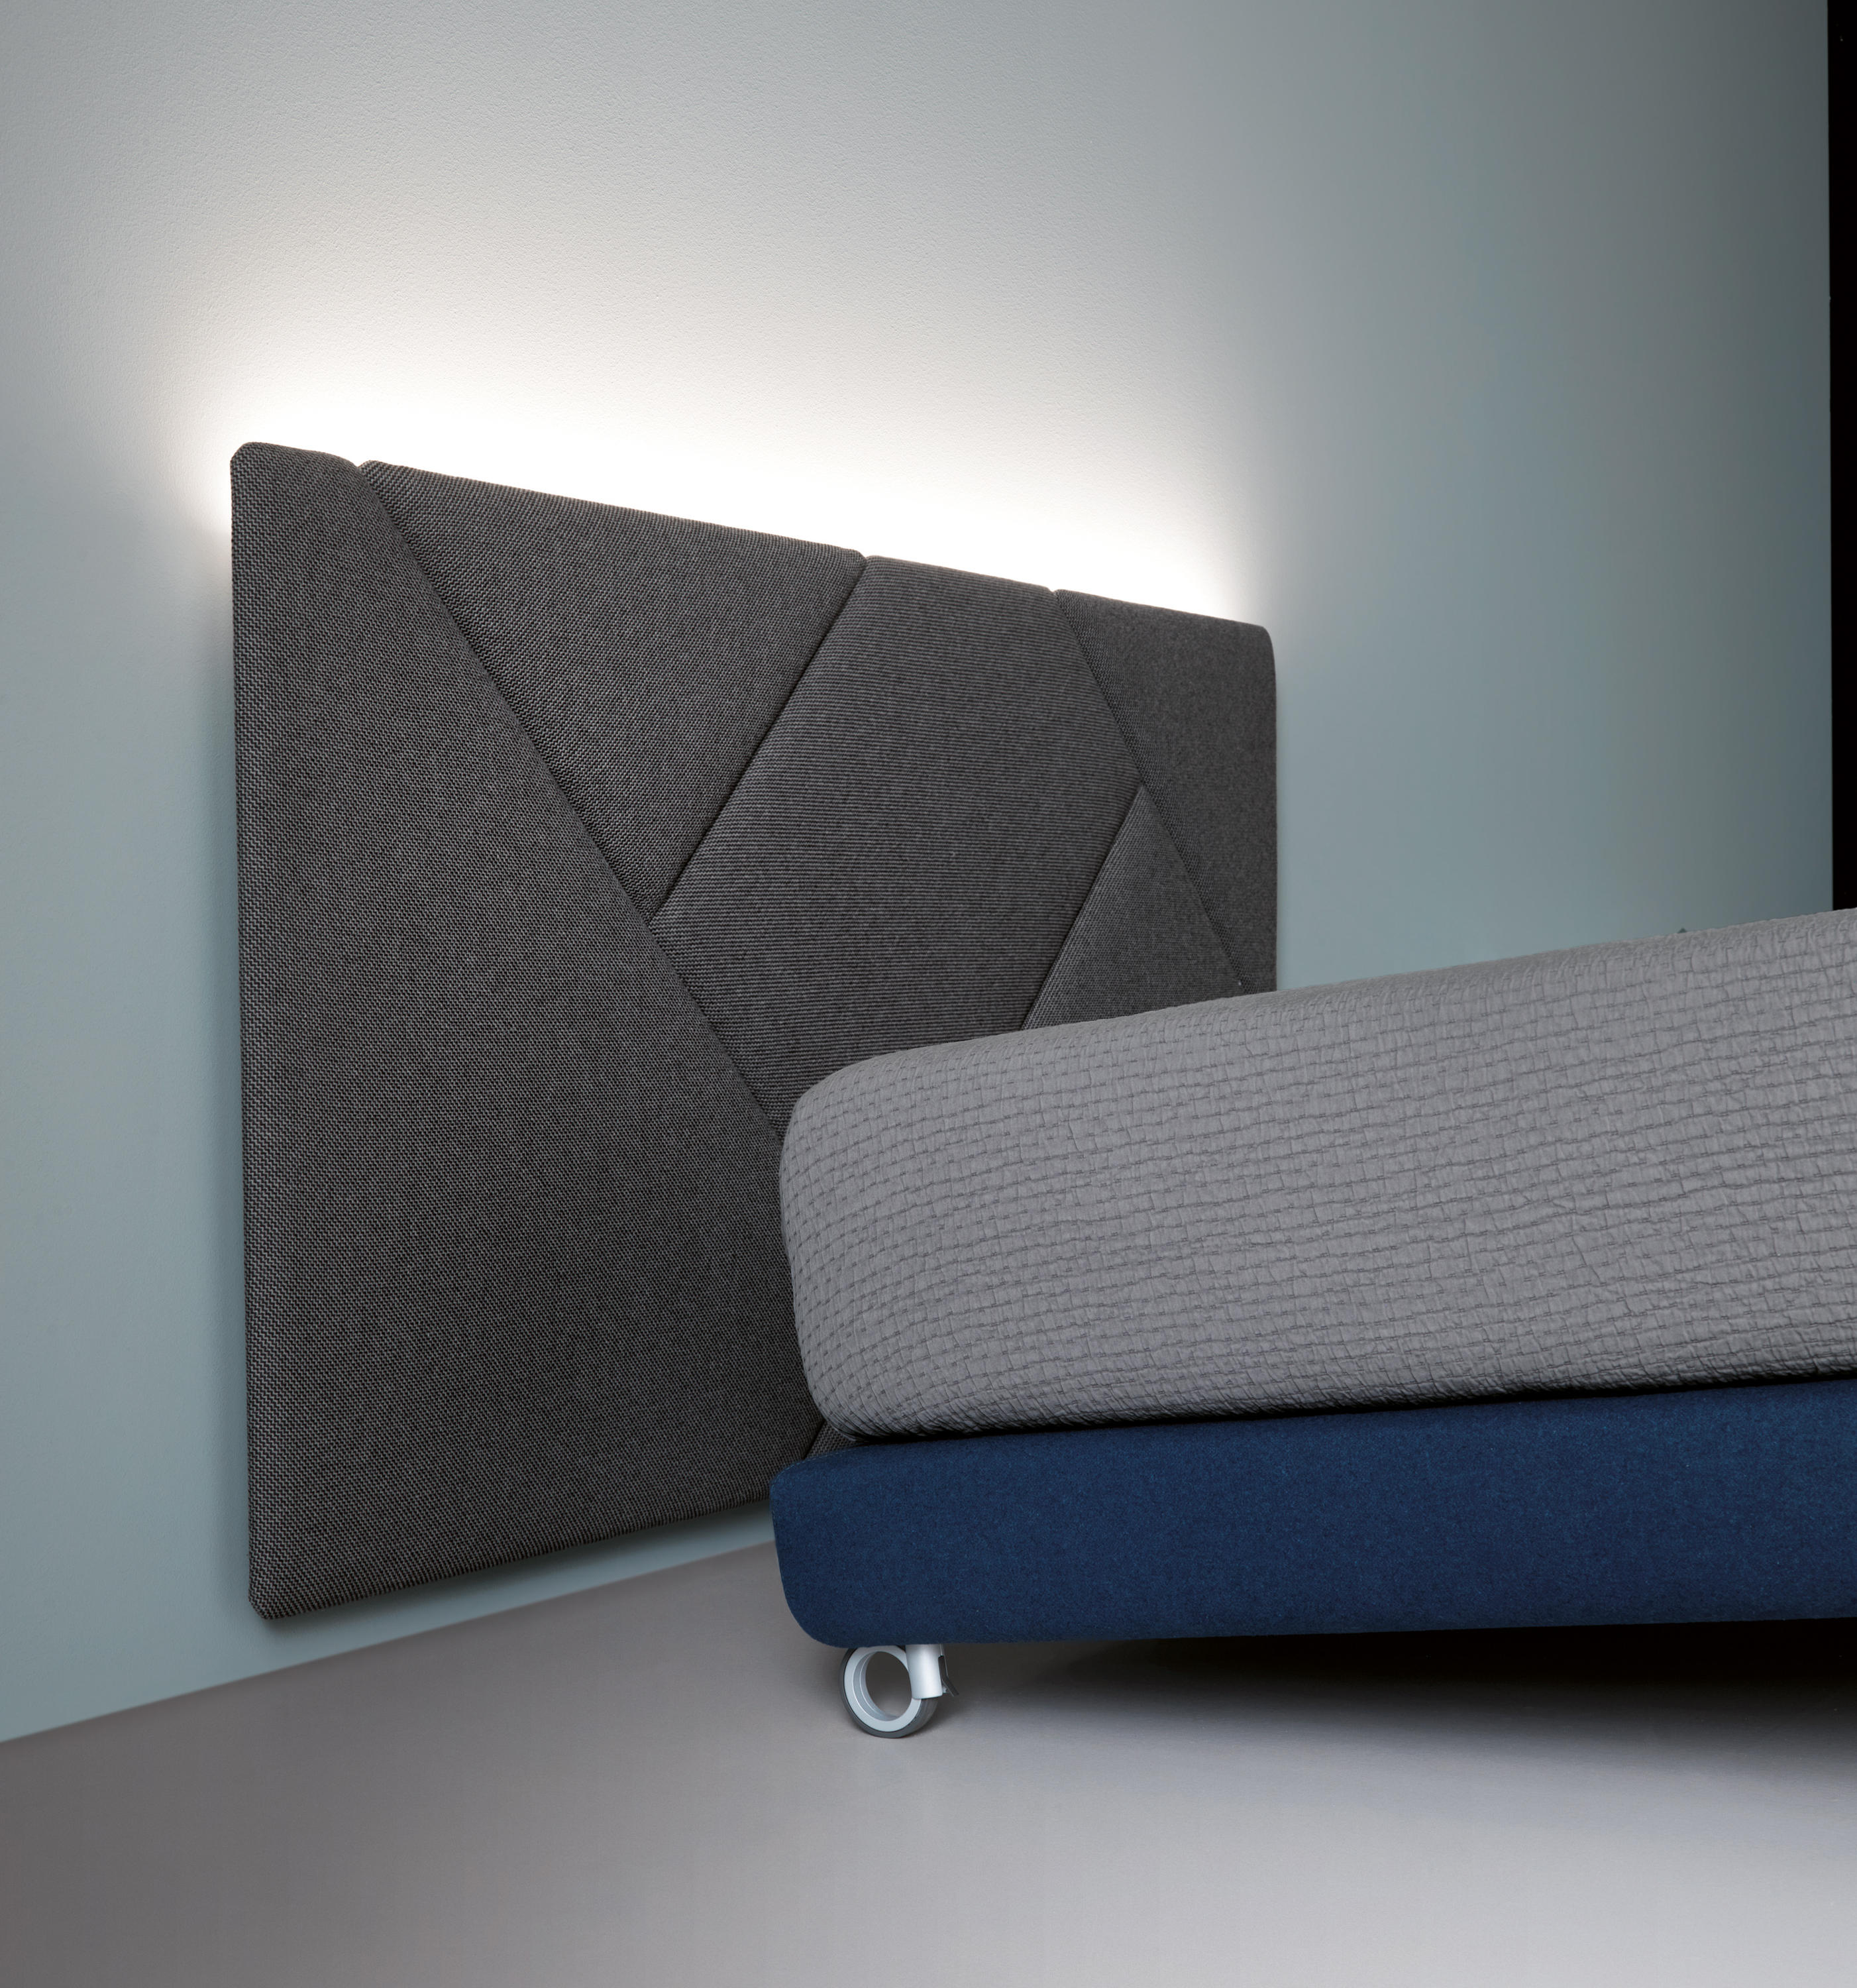 Opus Bedroom Furniture Opus Bed Double Beds From Caccaro Architonic